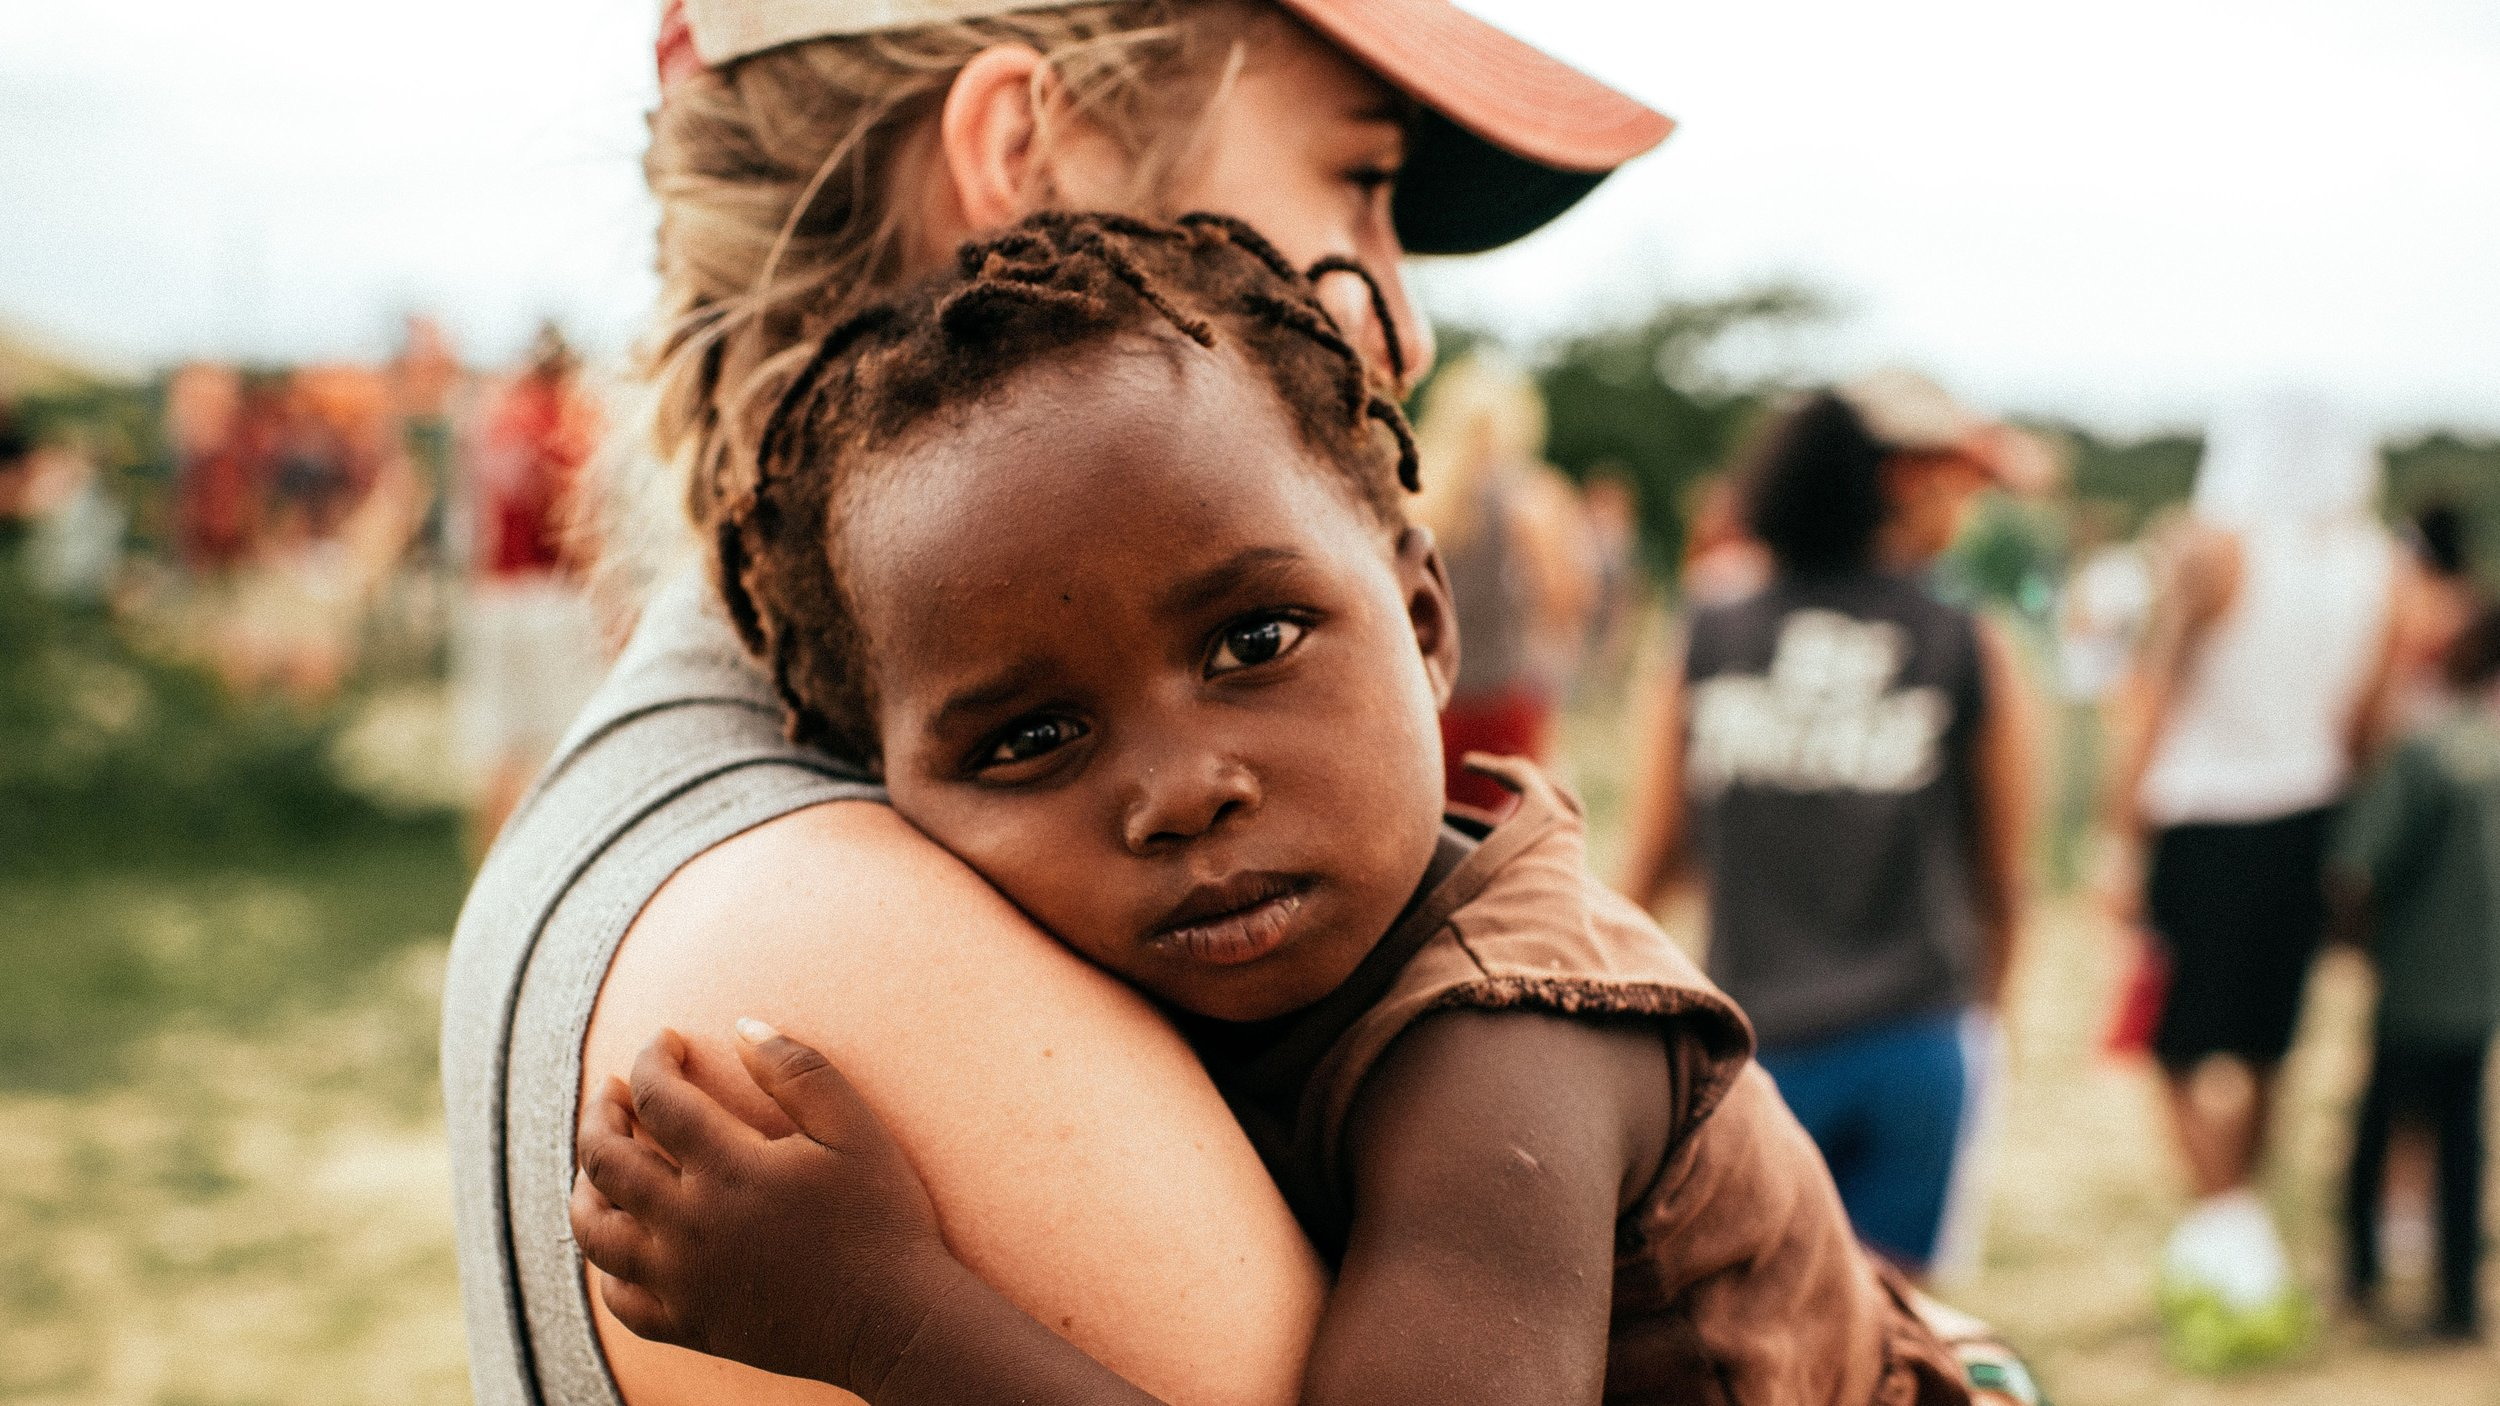 Are you called to advocate for human rights and social justice? - You can offer welcome and comfort to the vulnerable, the needy, and the marginalized.